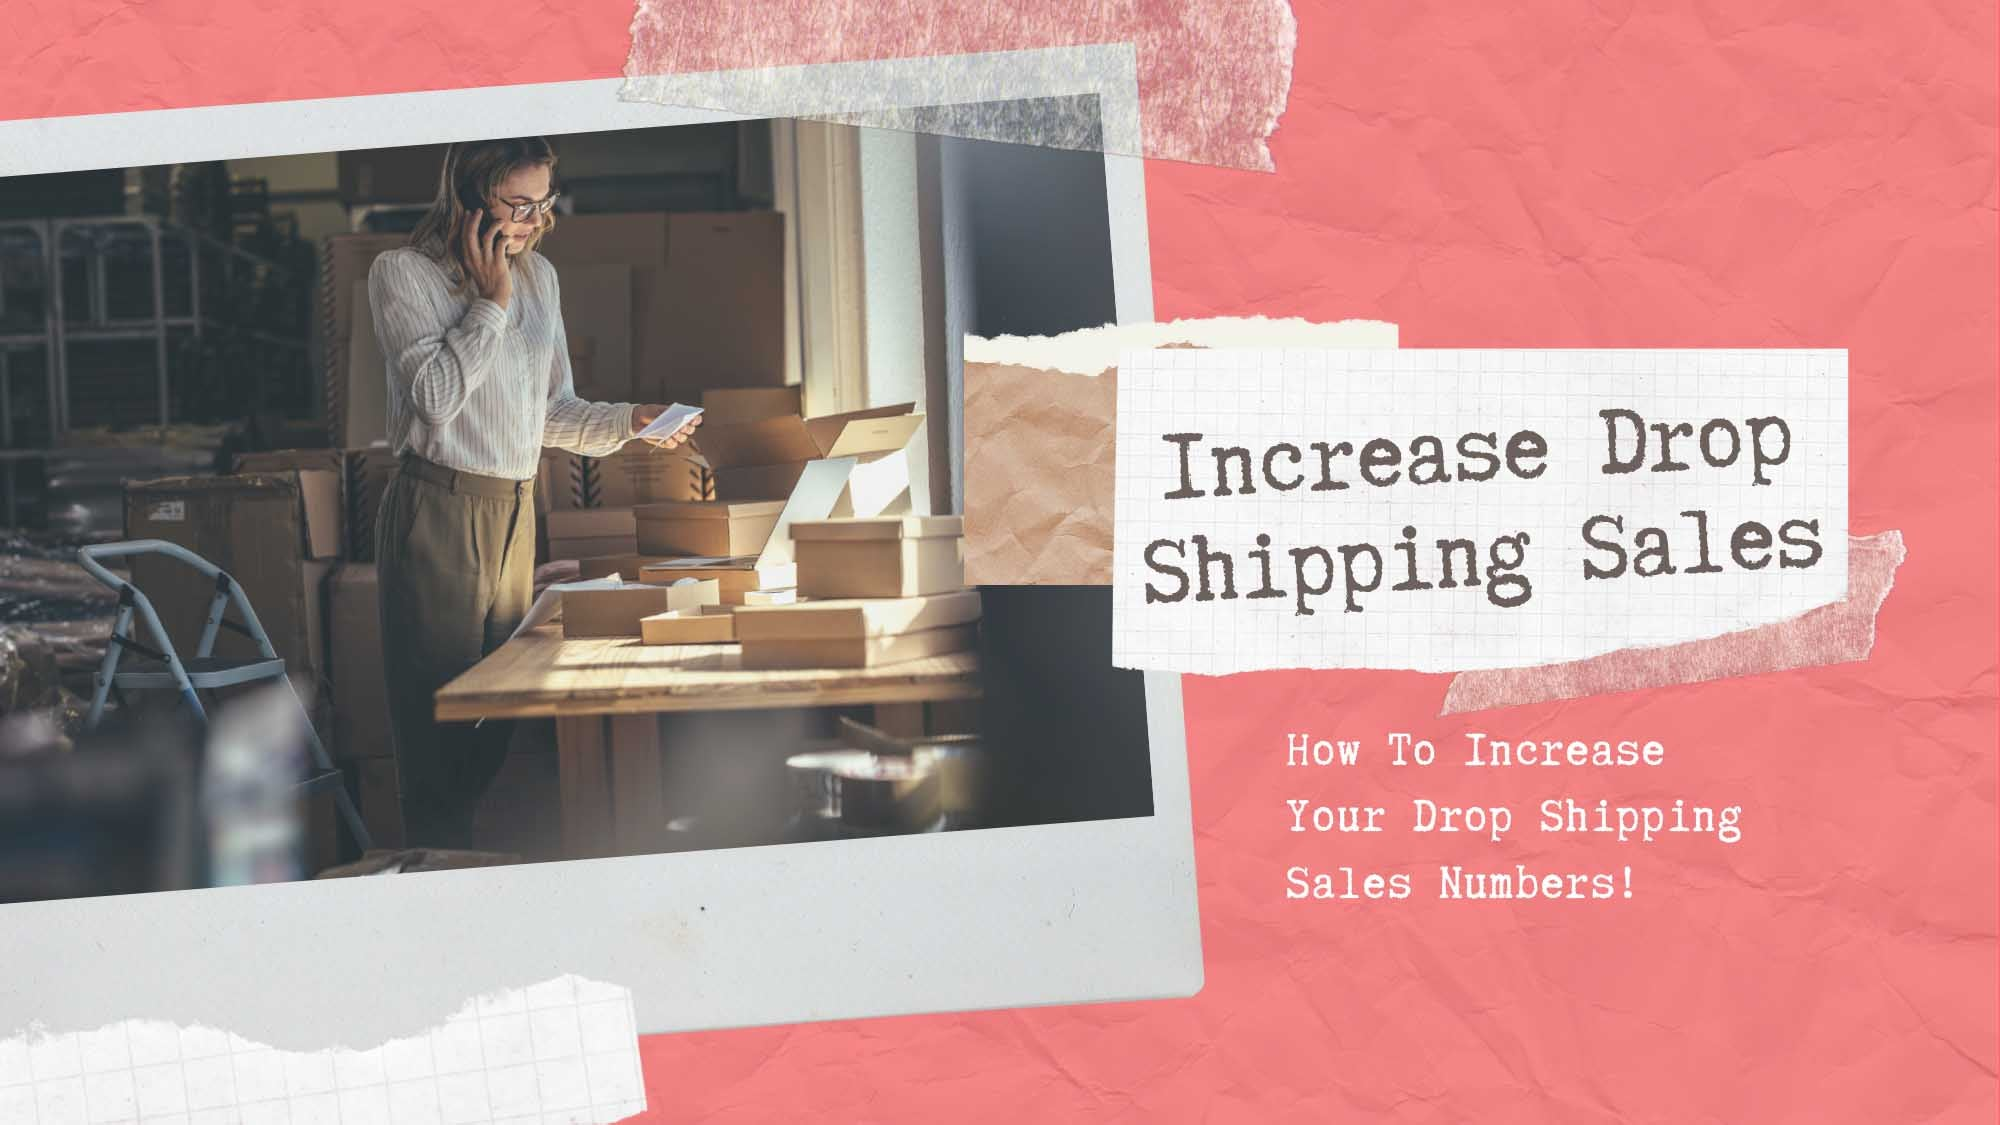 How To Increase Your Drop Shipping Sales Numbers!